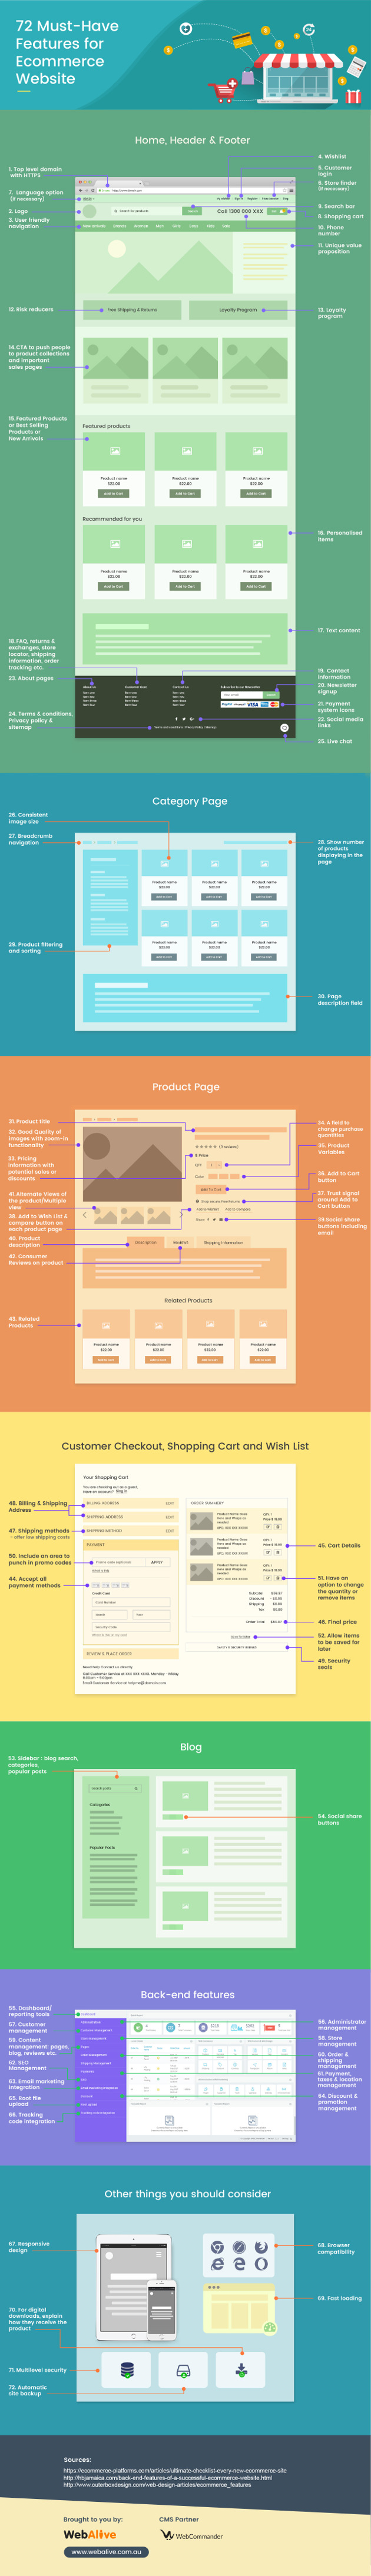 171009-infographic-e-commerce-website-features-small